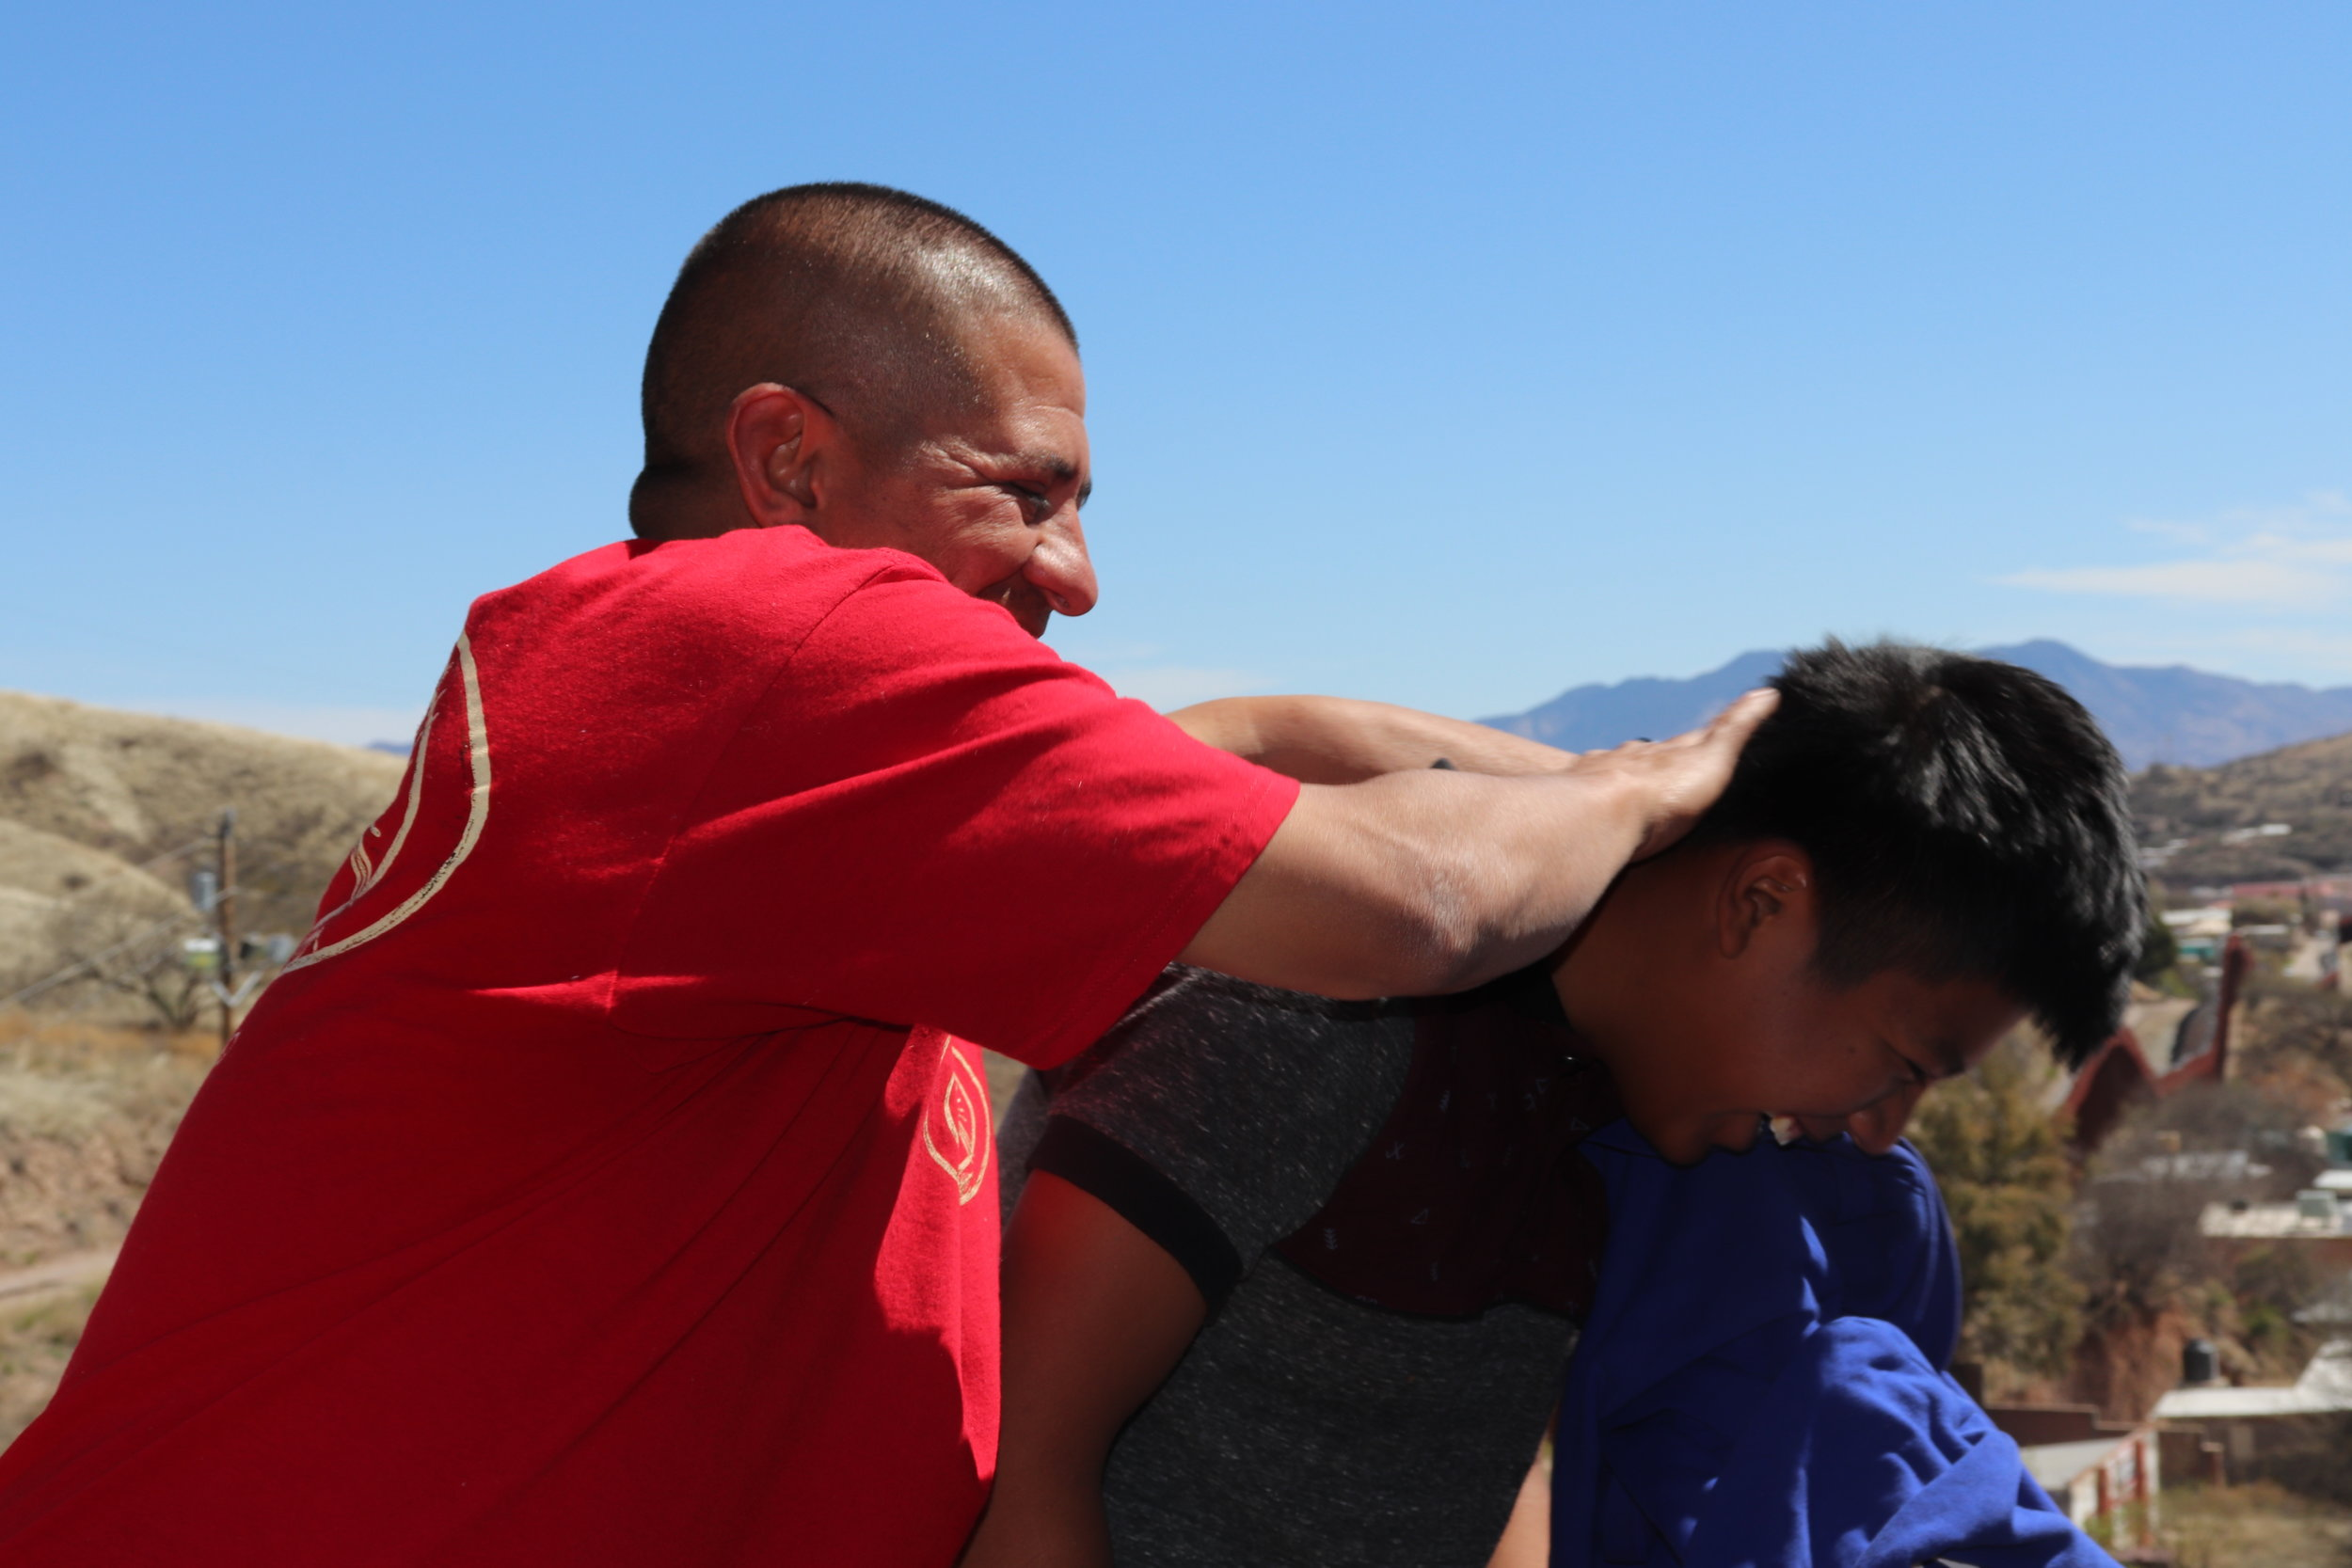 Rodger Babnew, an episcopal deacon and resident of Nogales, Arizona, spends four days a week crossing the border to spend his time with migrant families. He helped create La Roca with Cruzando Fronteras (which translates to Crossing Borders).